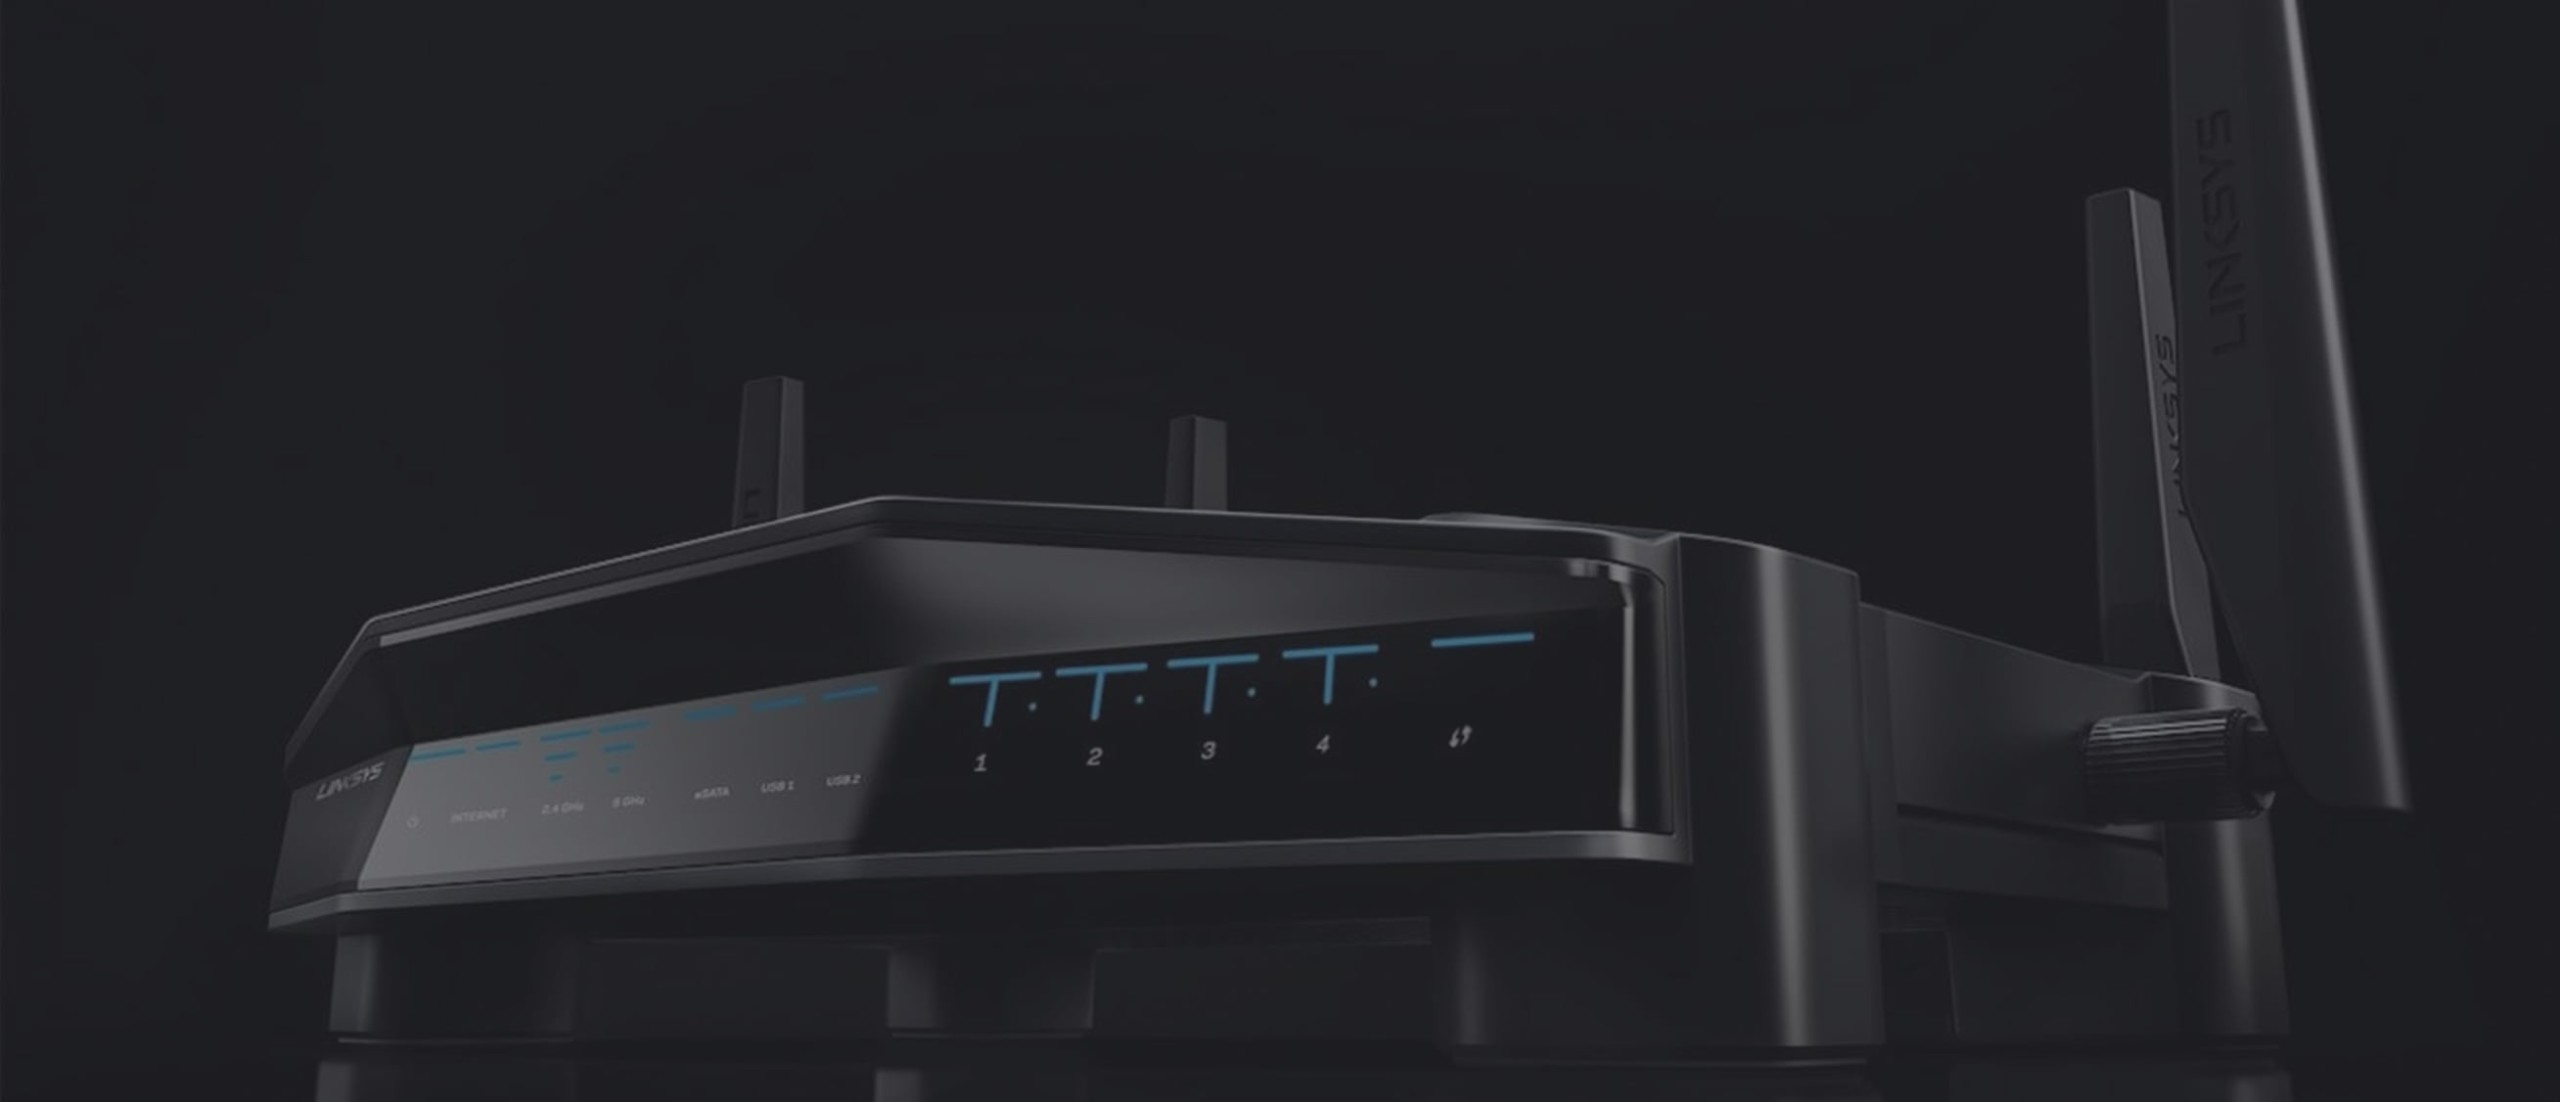 Linksys WRT32XB Gaming Router